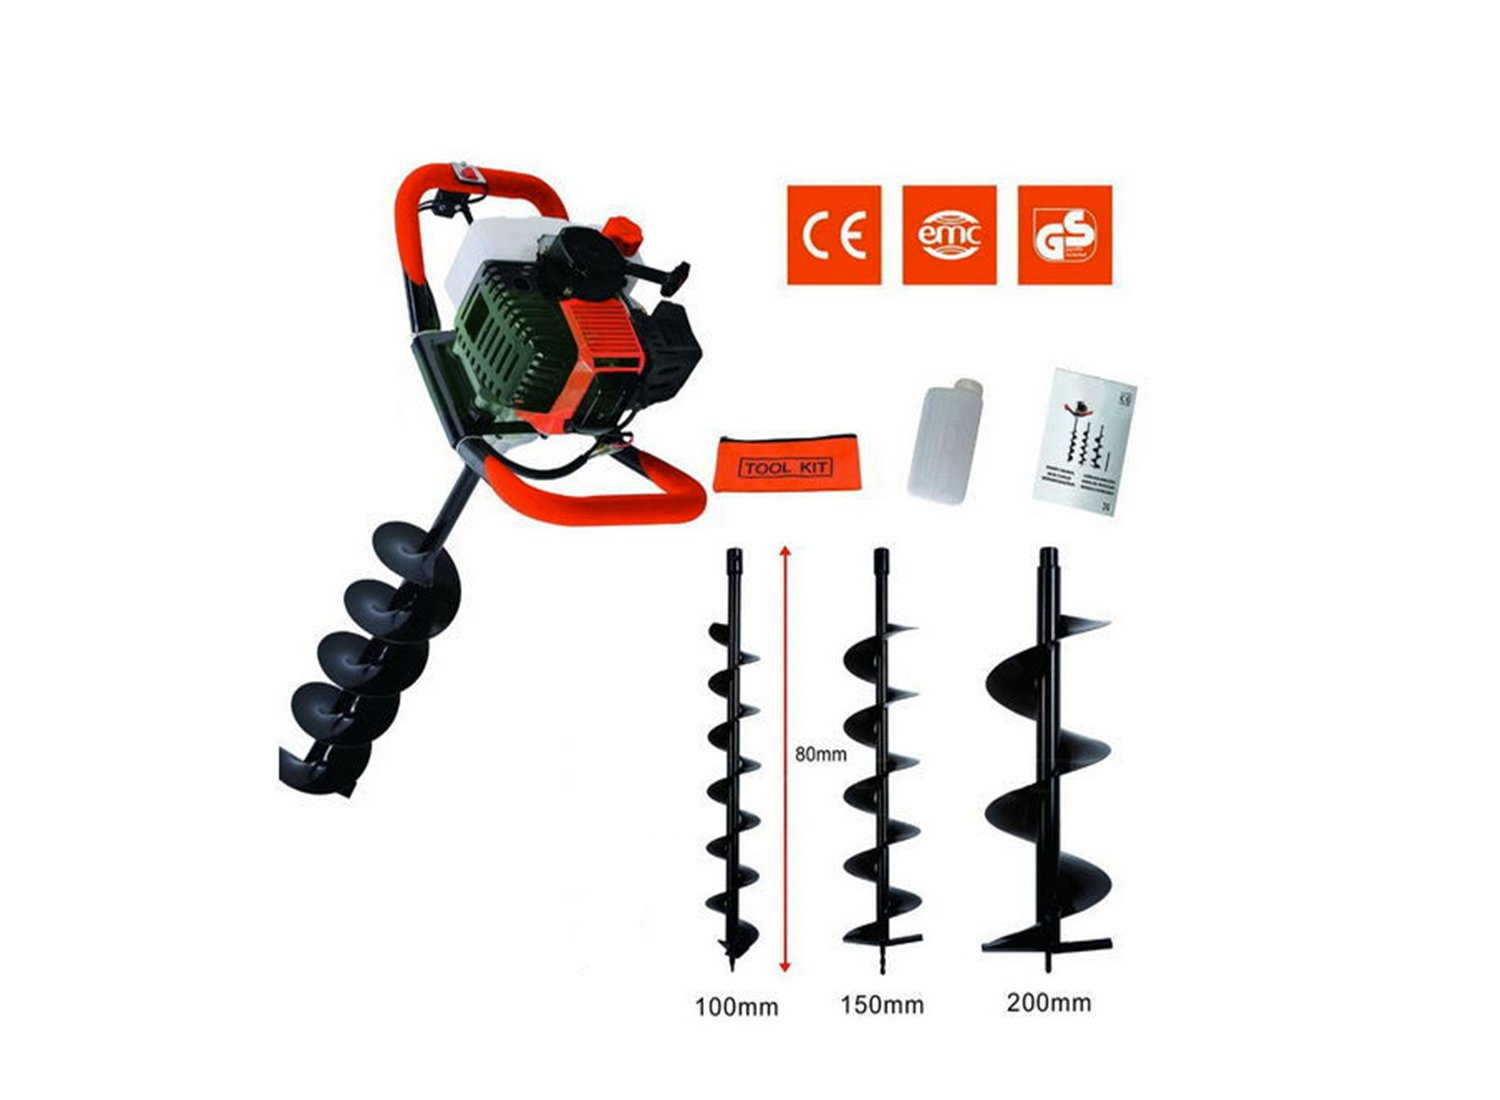 CHIKURA 52CC 2-strokes Ground Drill Earth Auger Hole Digger Garden Tools with drill bit (52cc with 100mm bit) Mingda Ltd